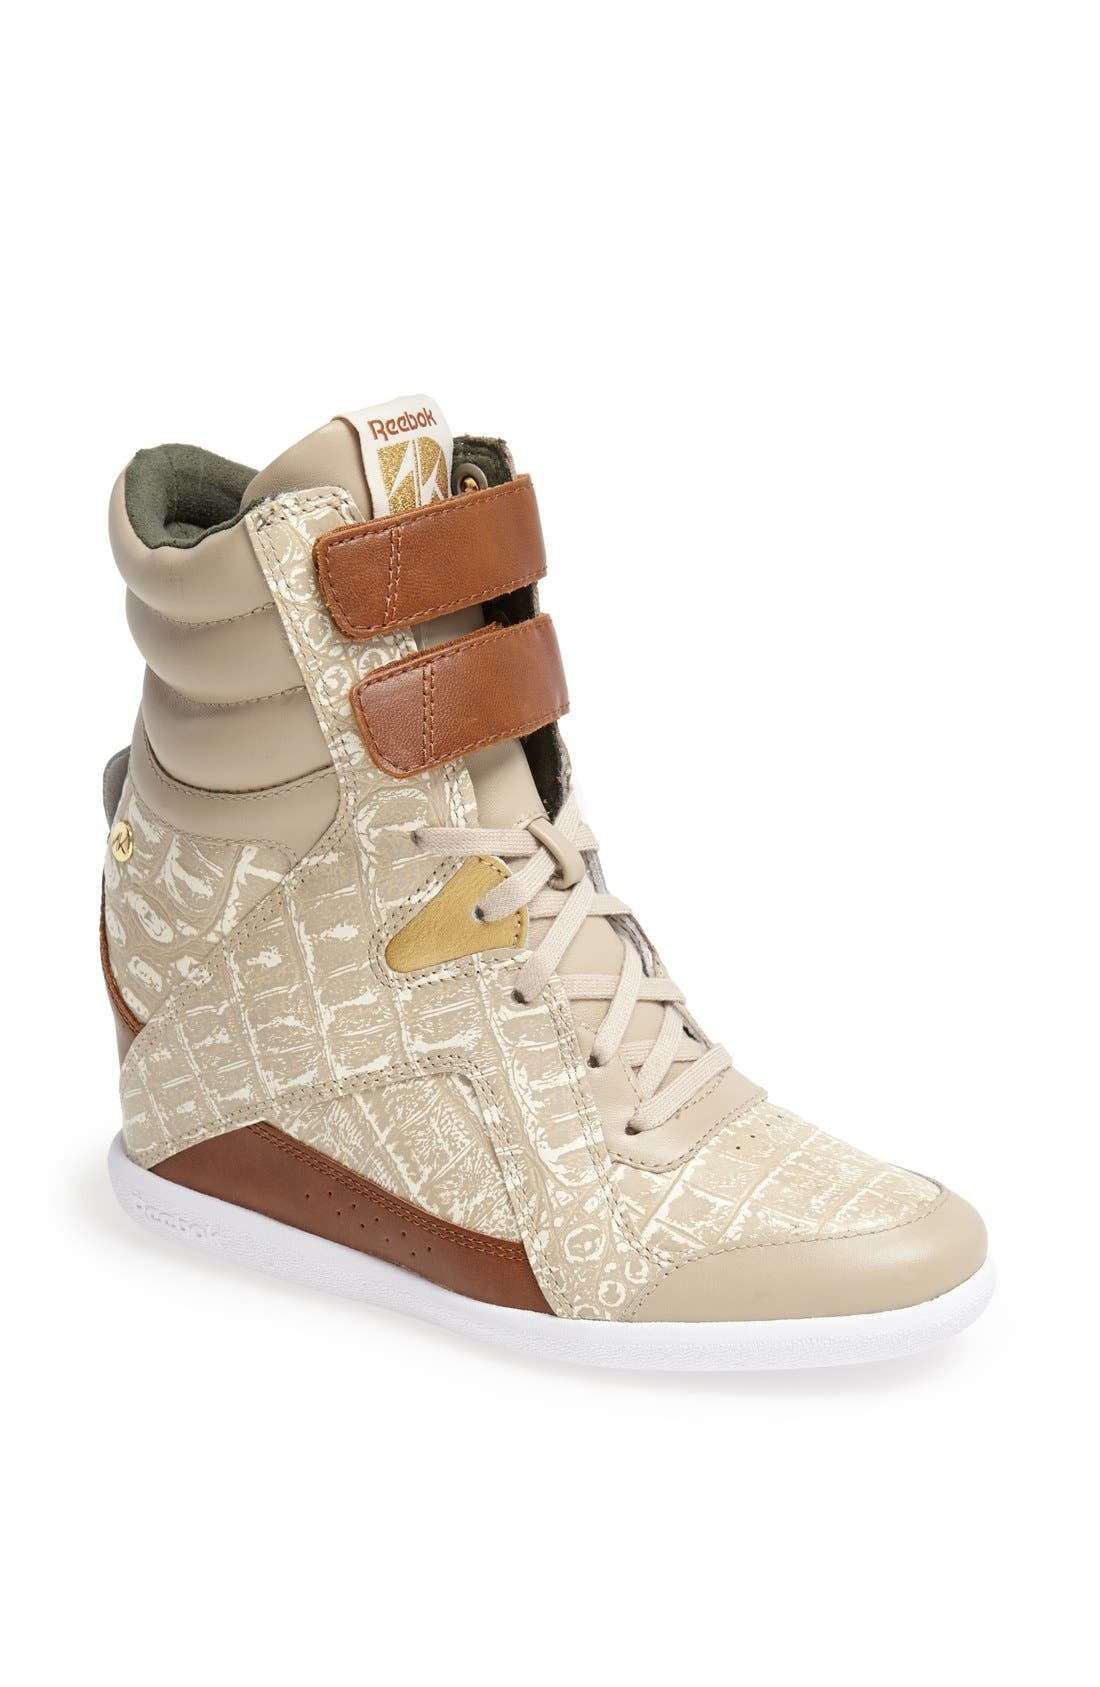 Main Image - Reebok Wedge Sneaker